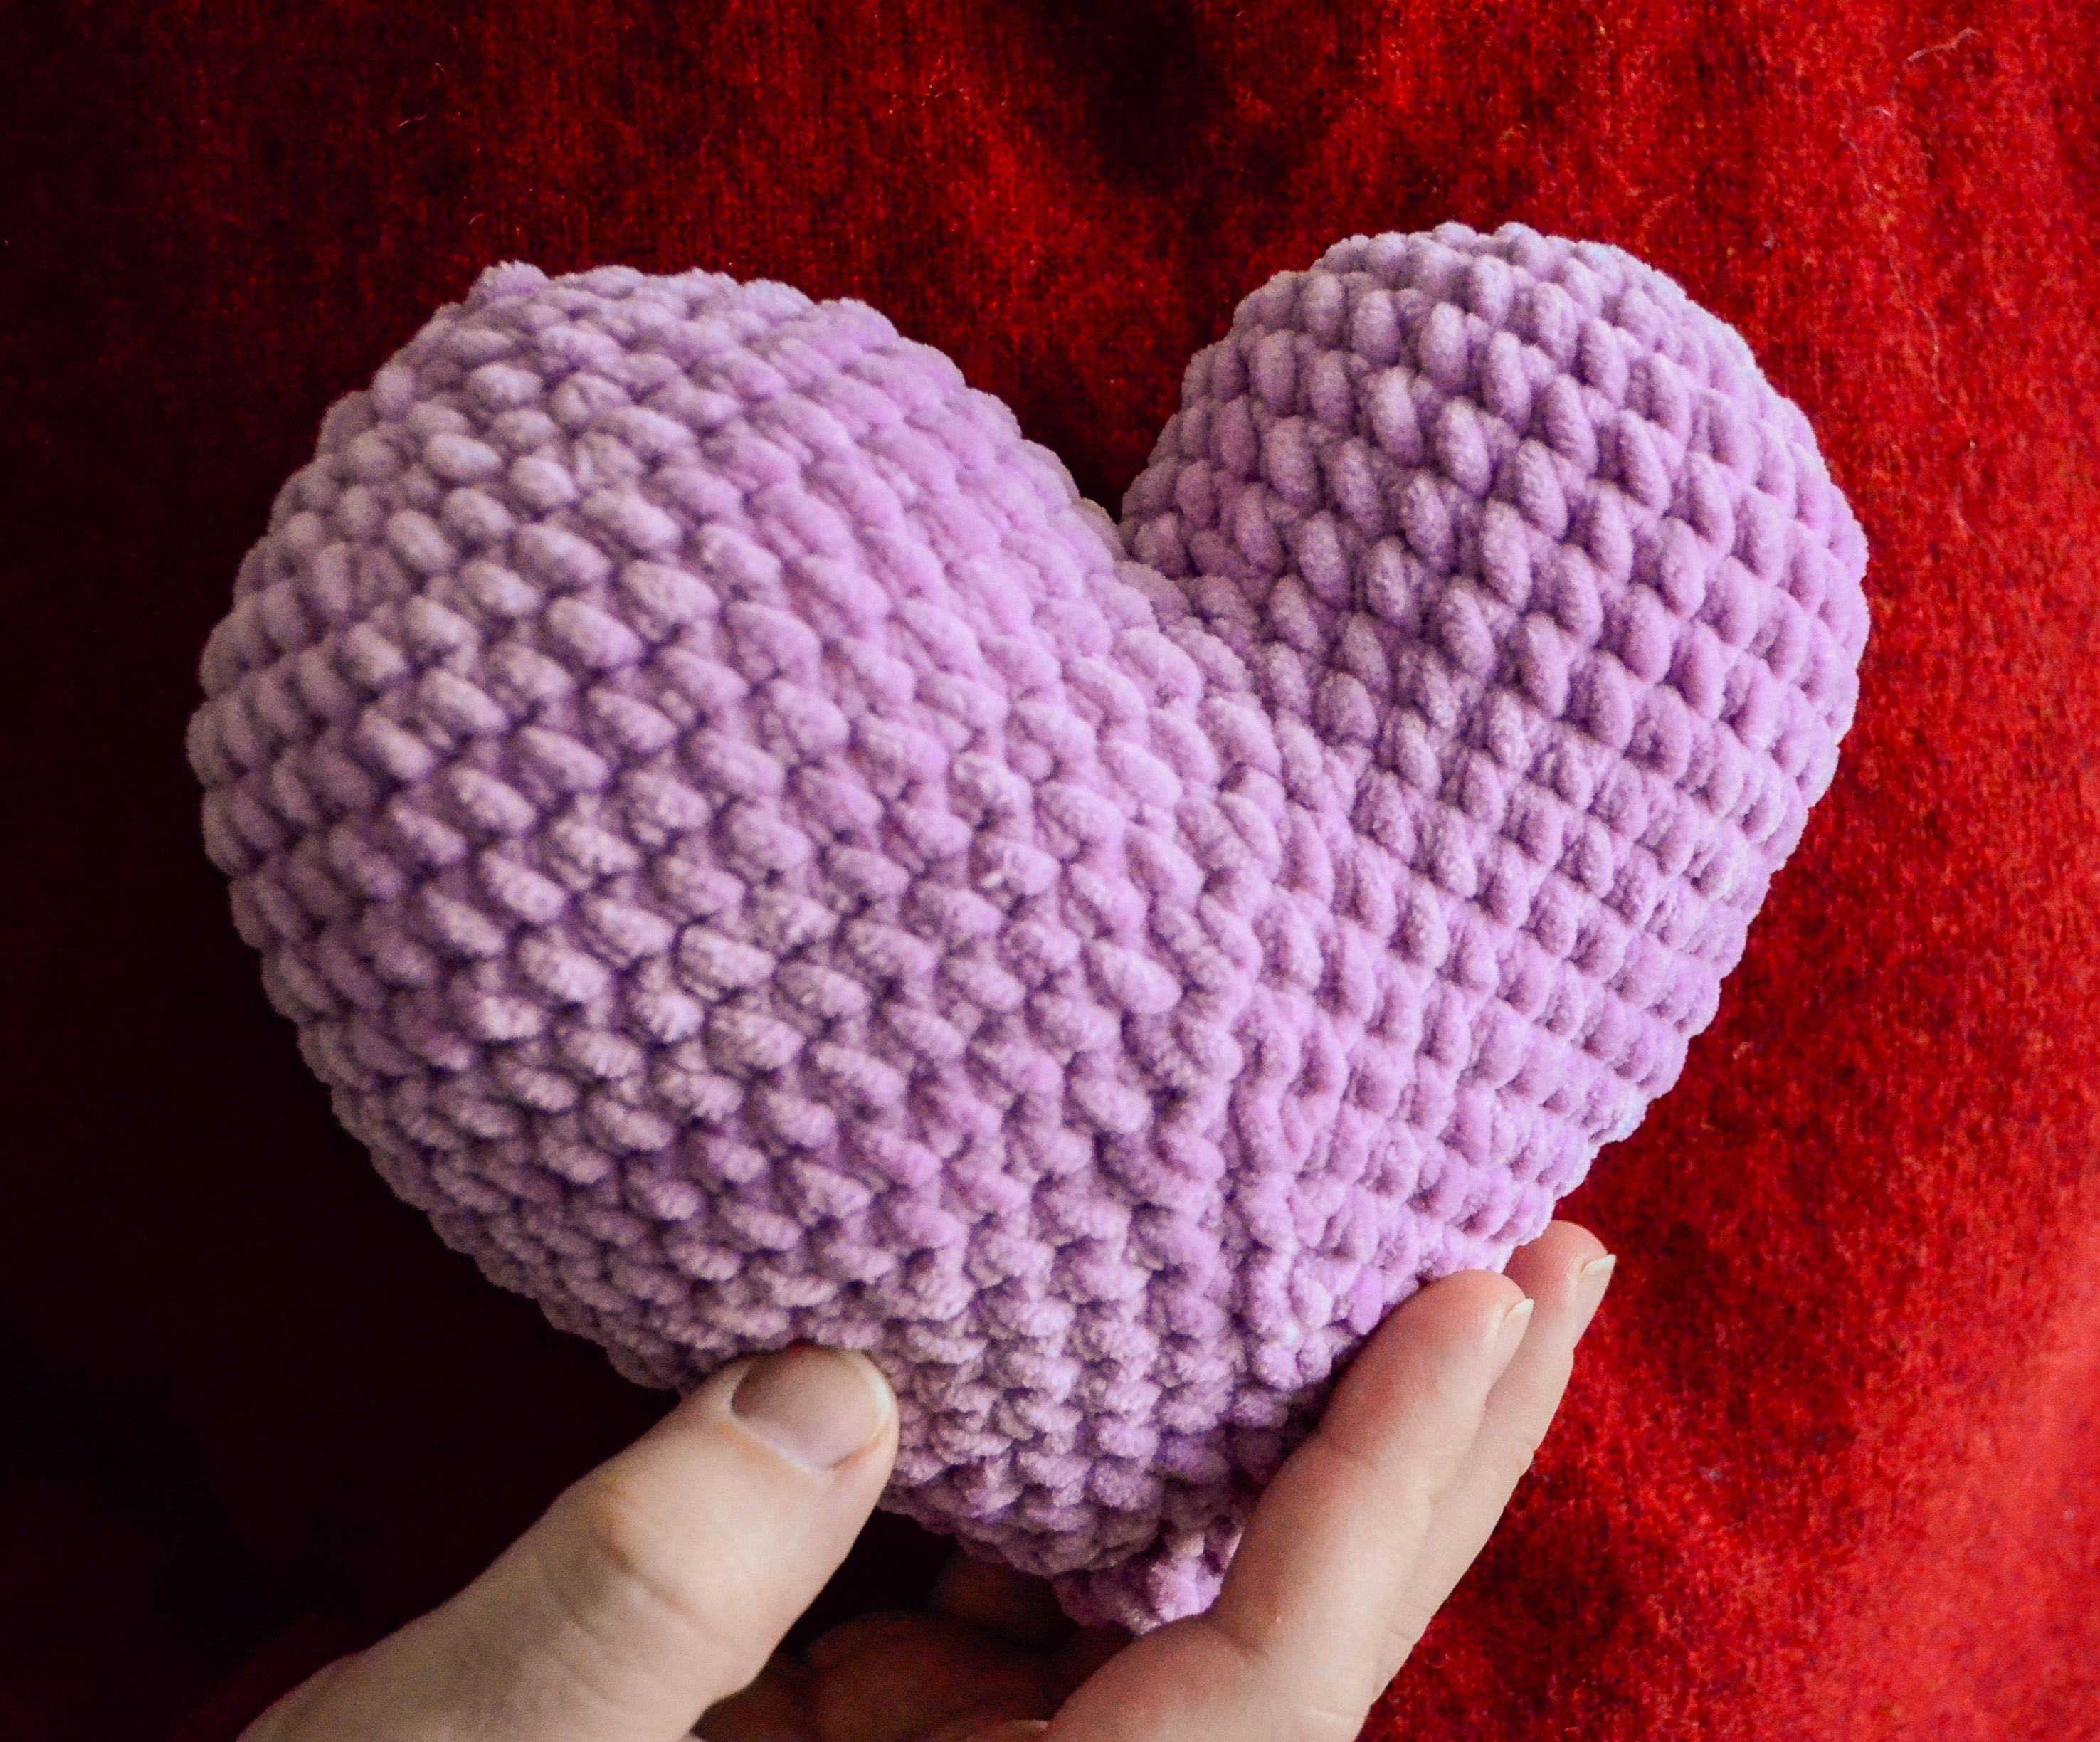 Free amigurumi heart pattern - Patchy heart sample held in a hand